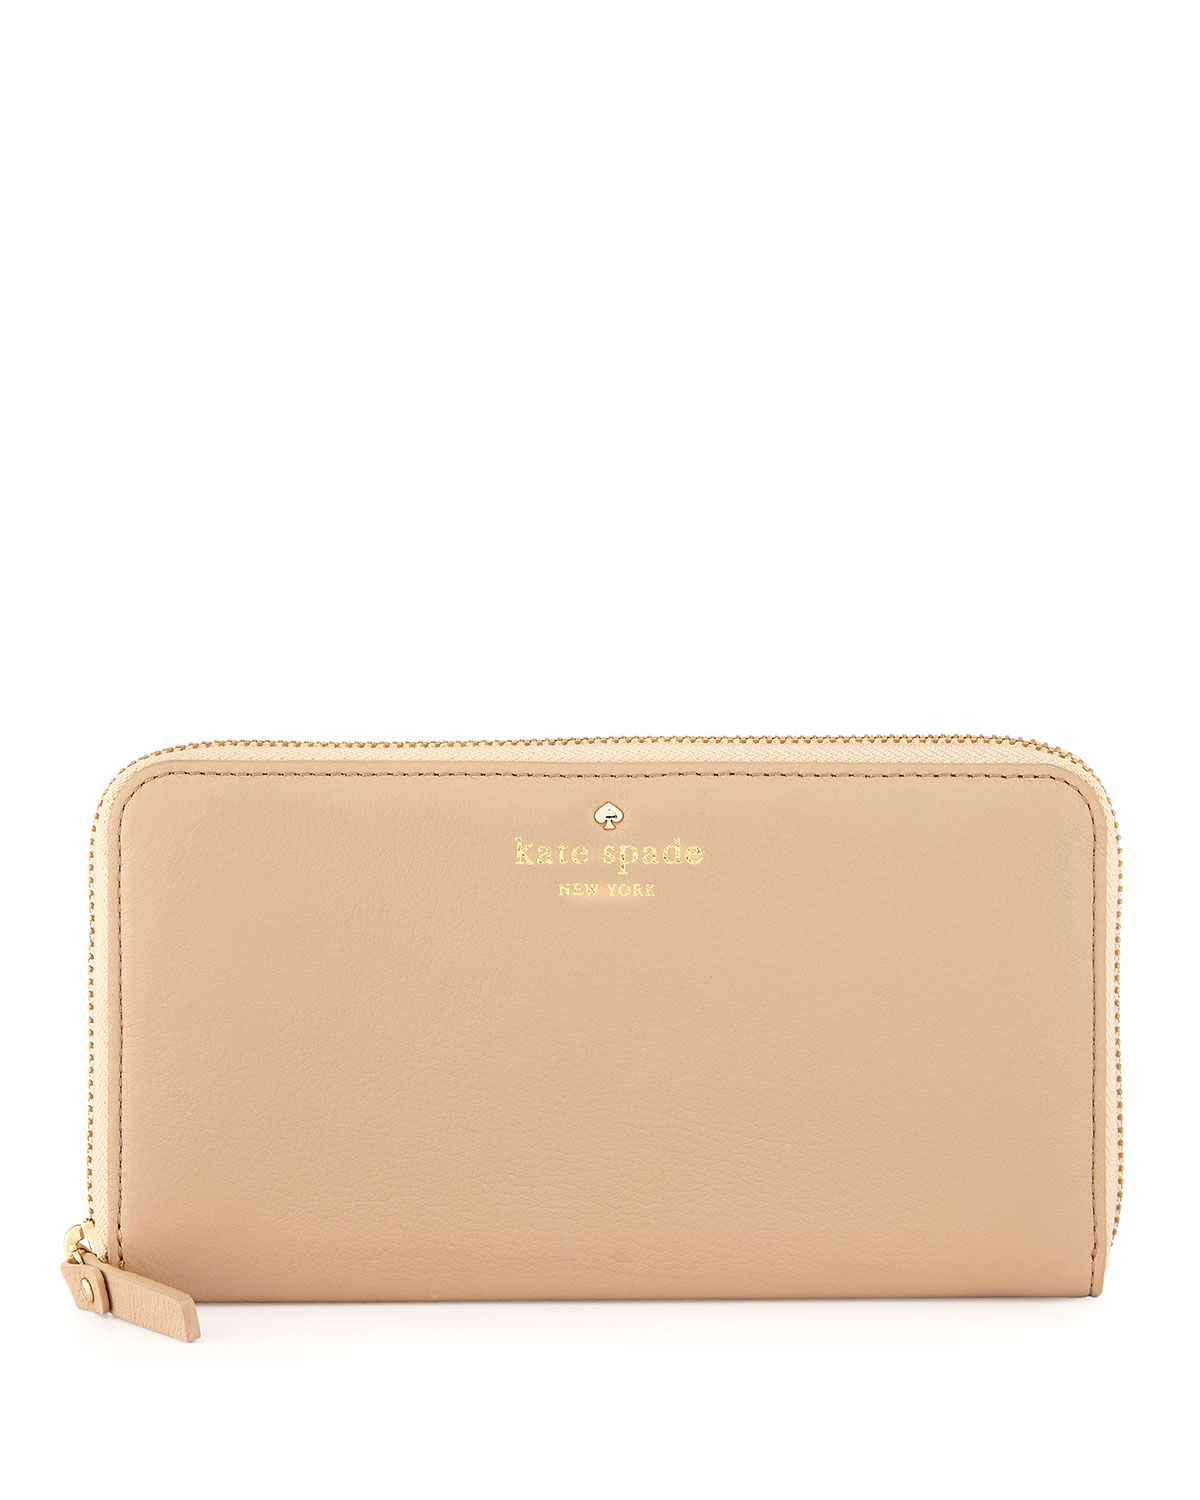 cobble hill lacey zip wallet, affogato   kate spade new york   Affogato